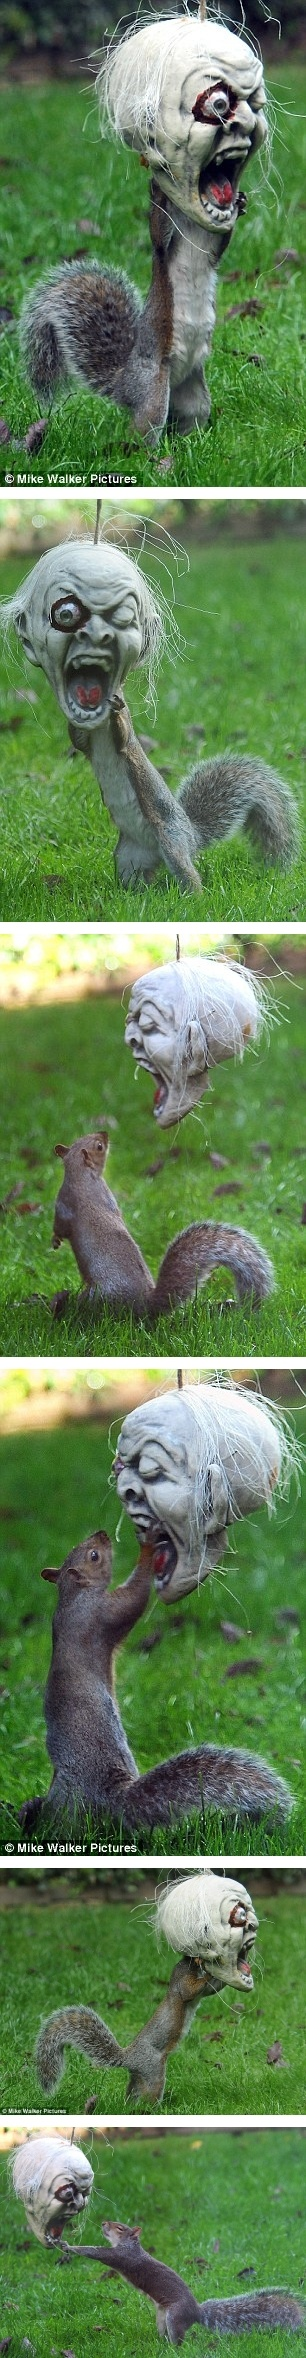 """Fake -  """"Squirrel terrorizes neighborhood."""" - The true story is as follows: The grey squirrel turned up in the garden of Vicky Freeman's home in Fareham, Hamshire, and made short work of the treats she'd hidden inside the  macabre mask.The 54-year-old grandmother said: """"I always hang stuff up in my garden for the kids at Halloween but was surprised to see a squirrel so fascinated by the macabre skull."""" I included the series of images. He never left the yard............"""